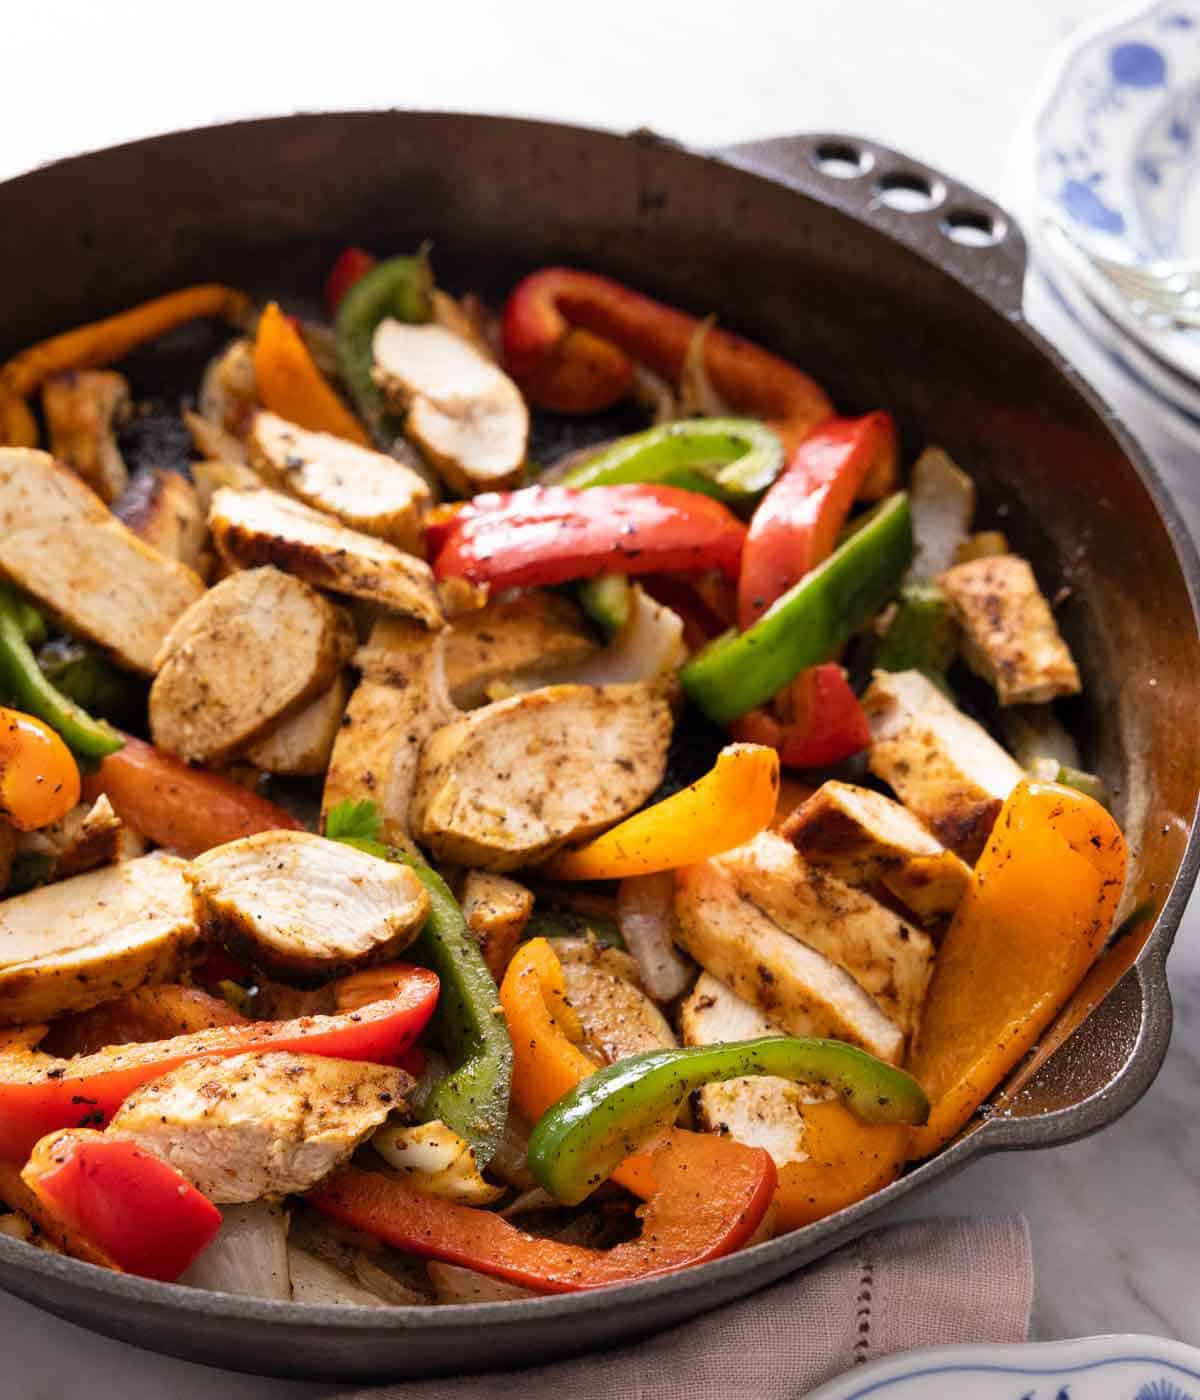 A cast iron skillet with chicken fajitas.